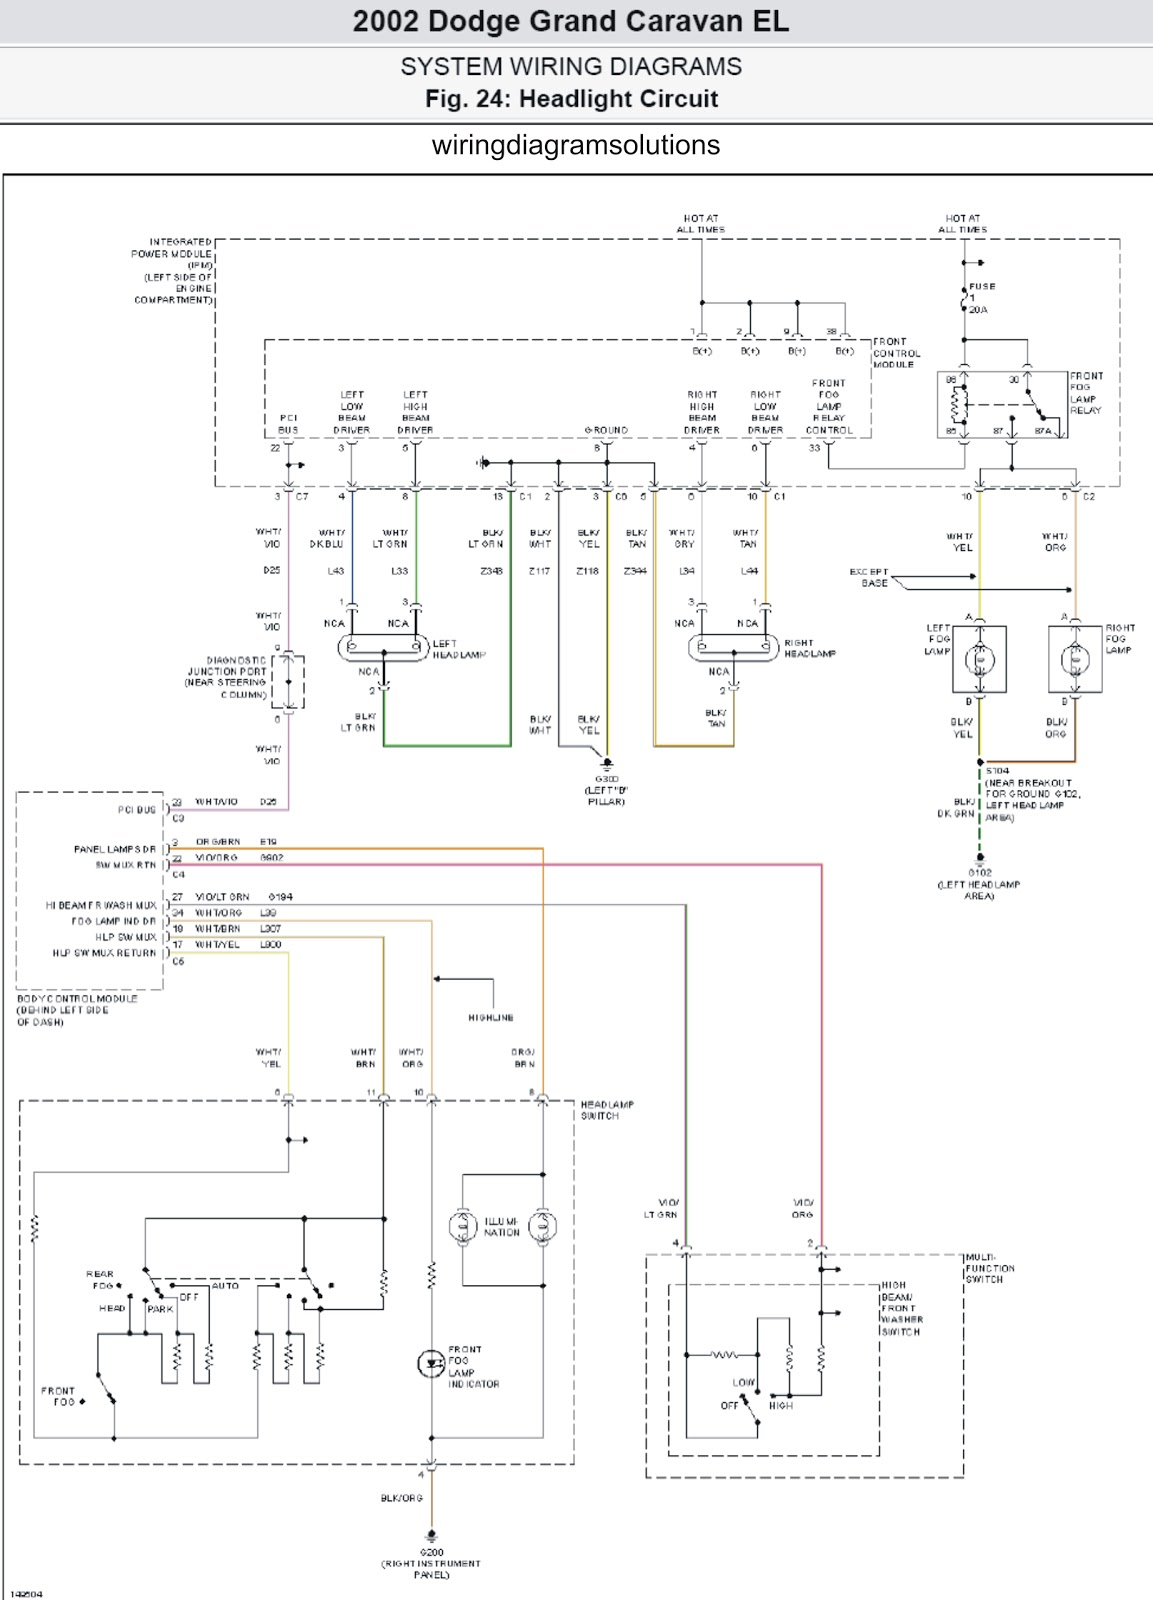 wiring diagram for 1999 dodge caravan wiring diagram table 1999 Dodge Caravan Power Diagram